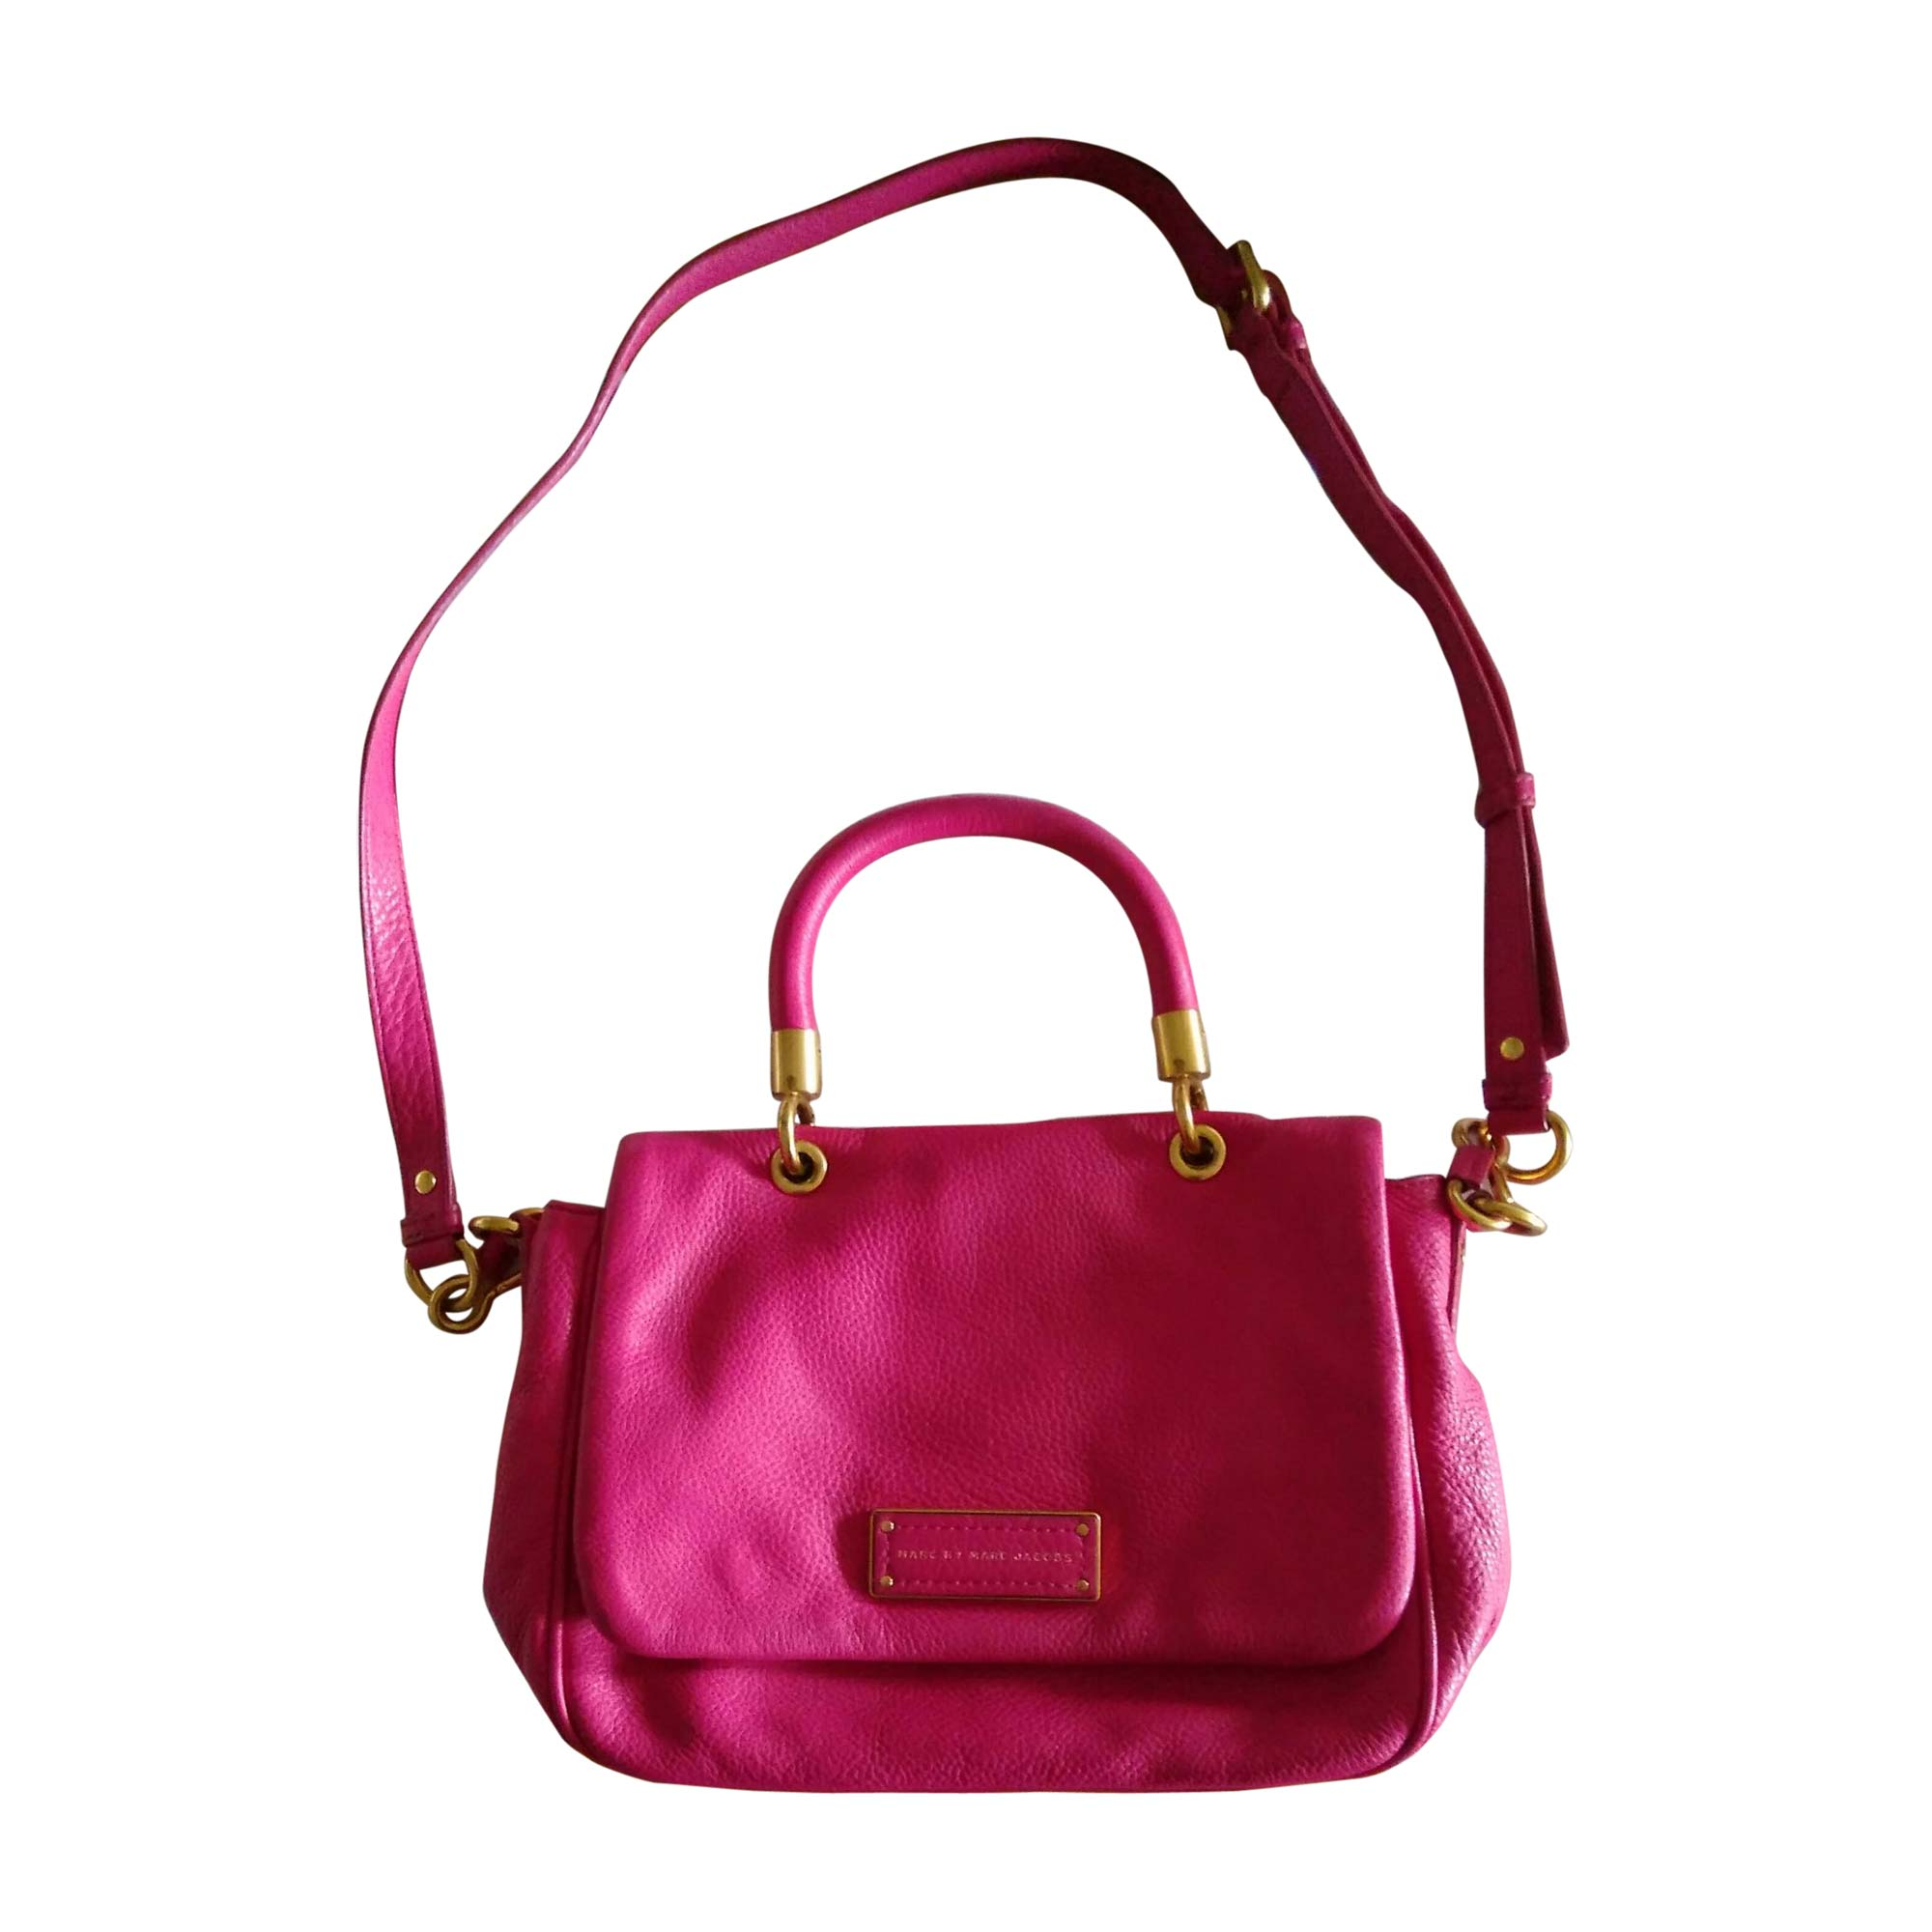 7997921 Cuir À En Rose Main Jacobs Sac Marc kiwOZuTXlP